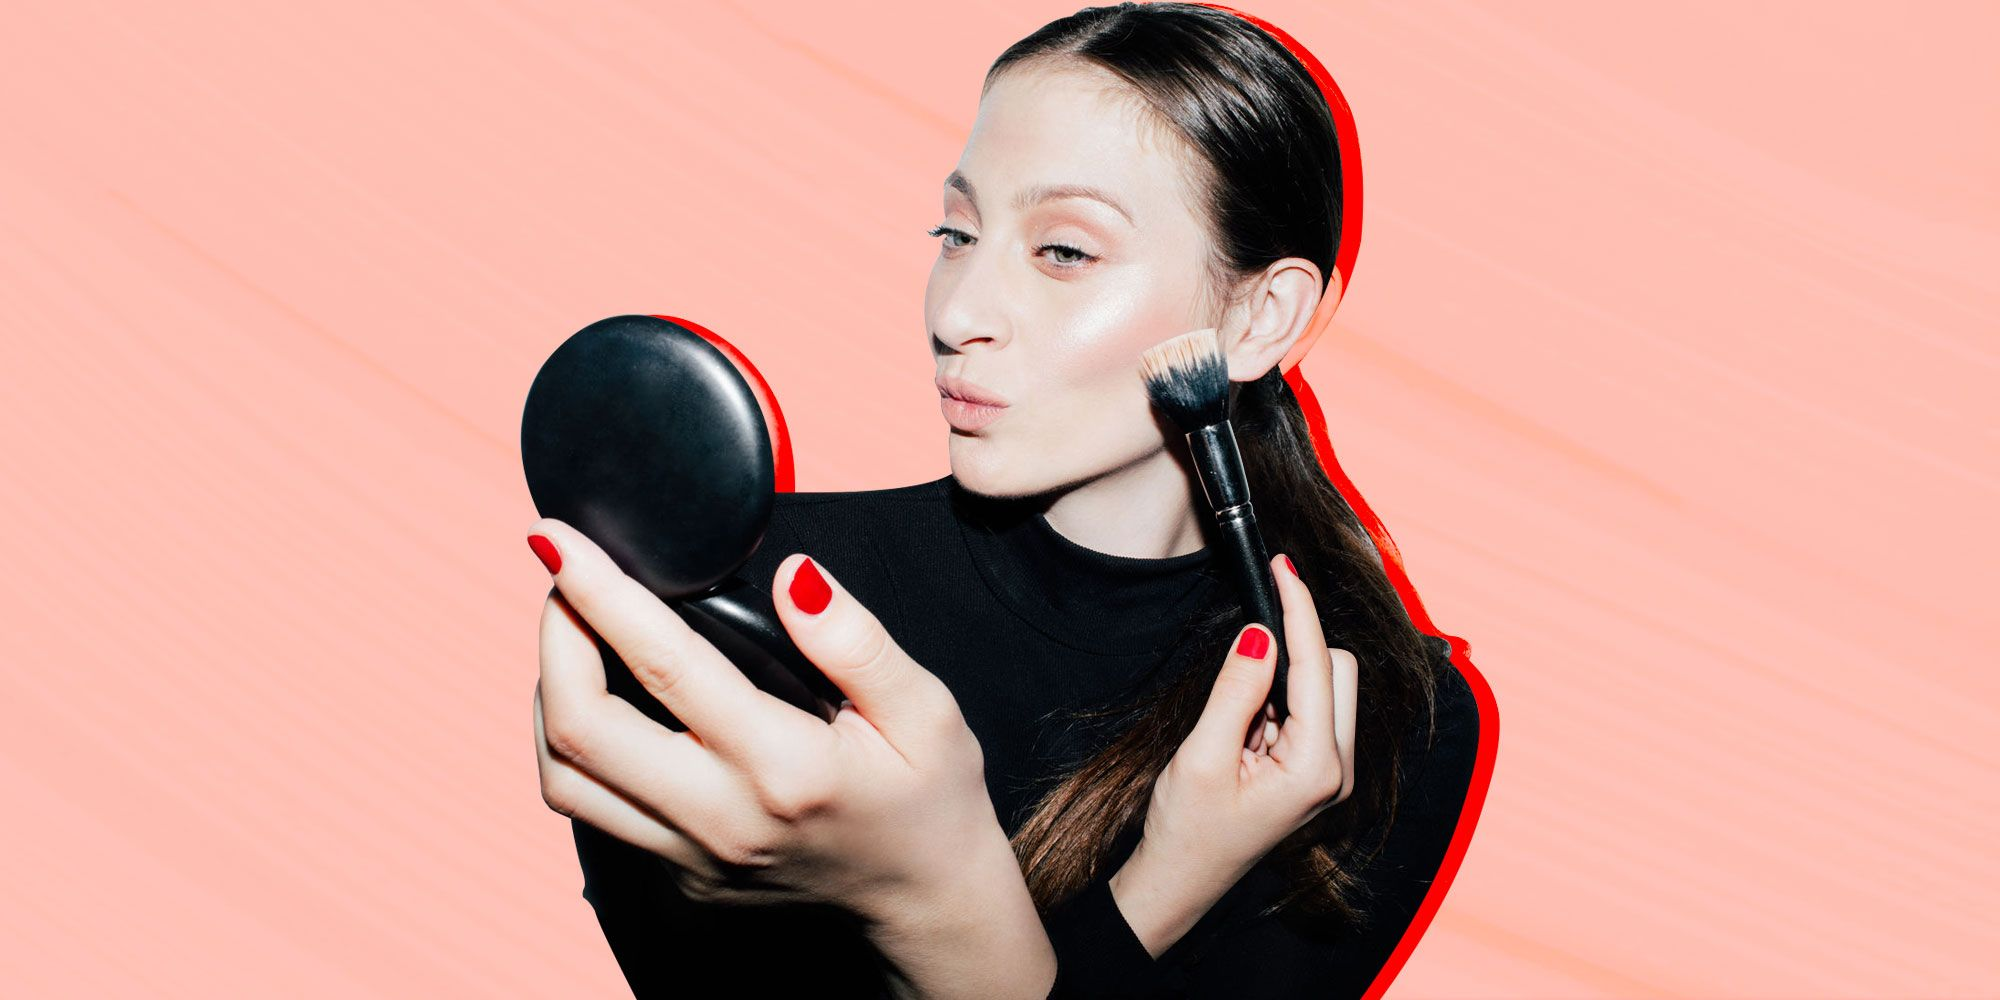 How to Apply Foundation for Beginners